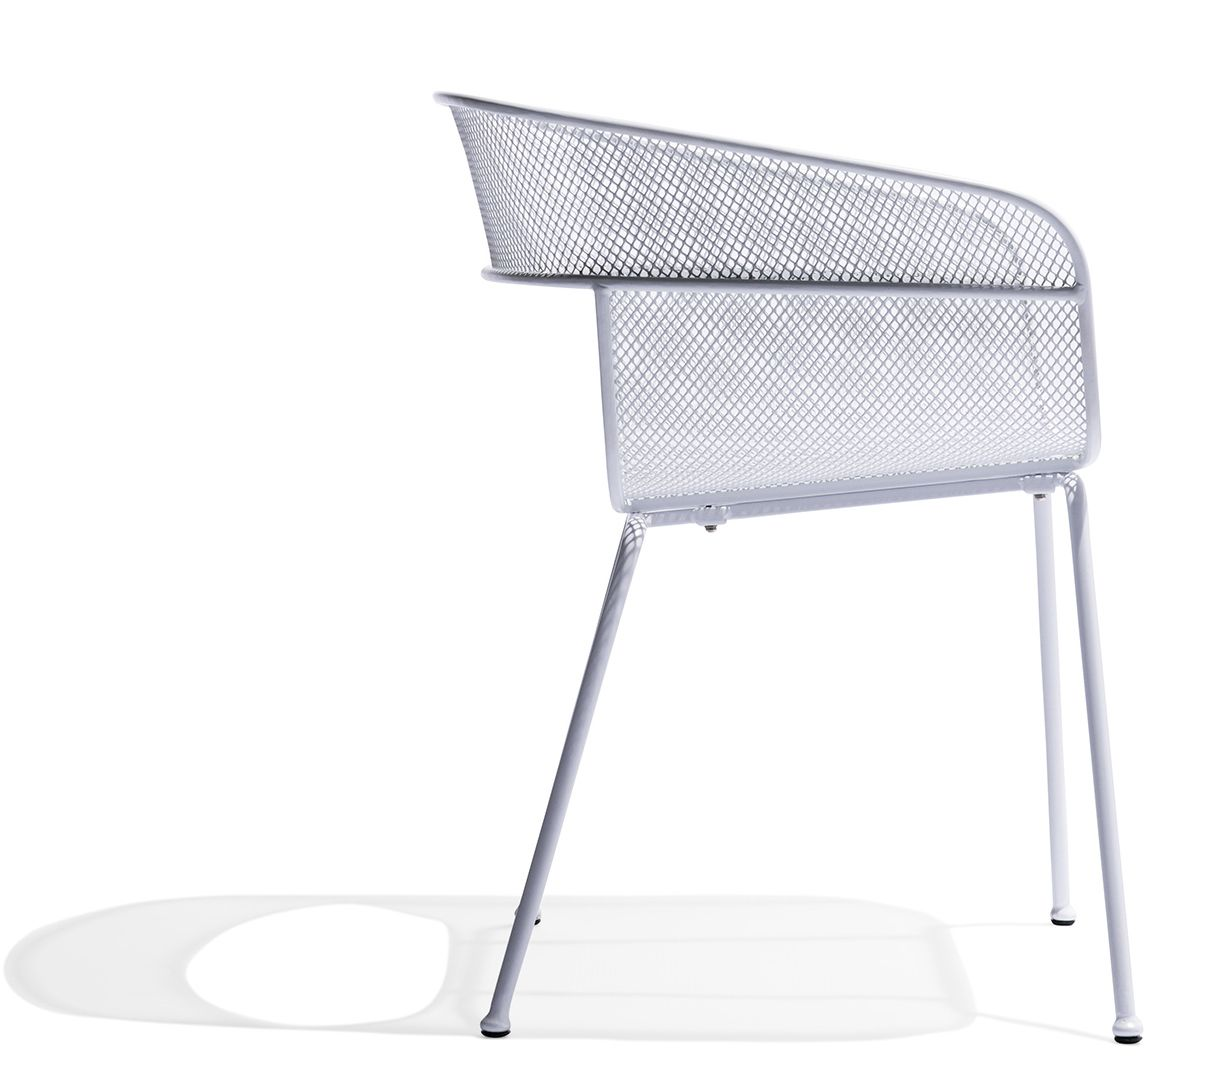 Scoop Chair Chair Outdoor Furniture Chairs Metal Chairs